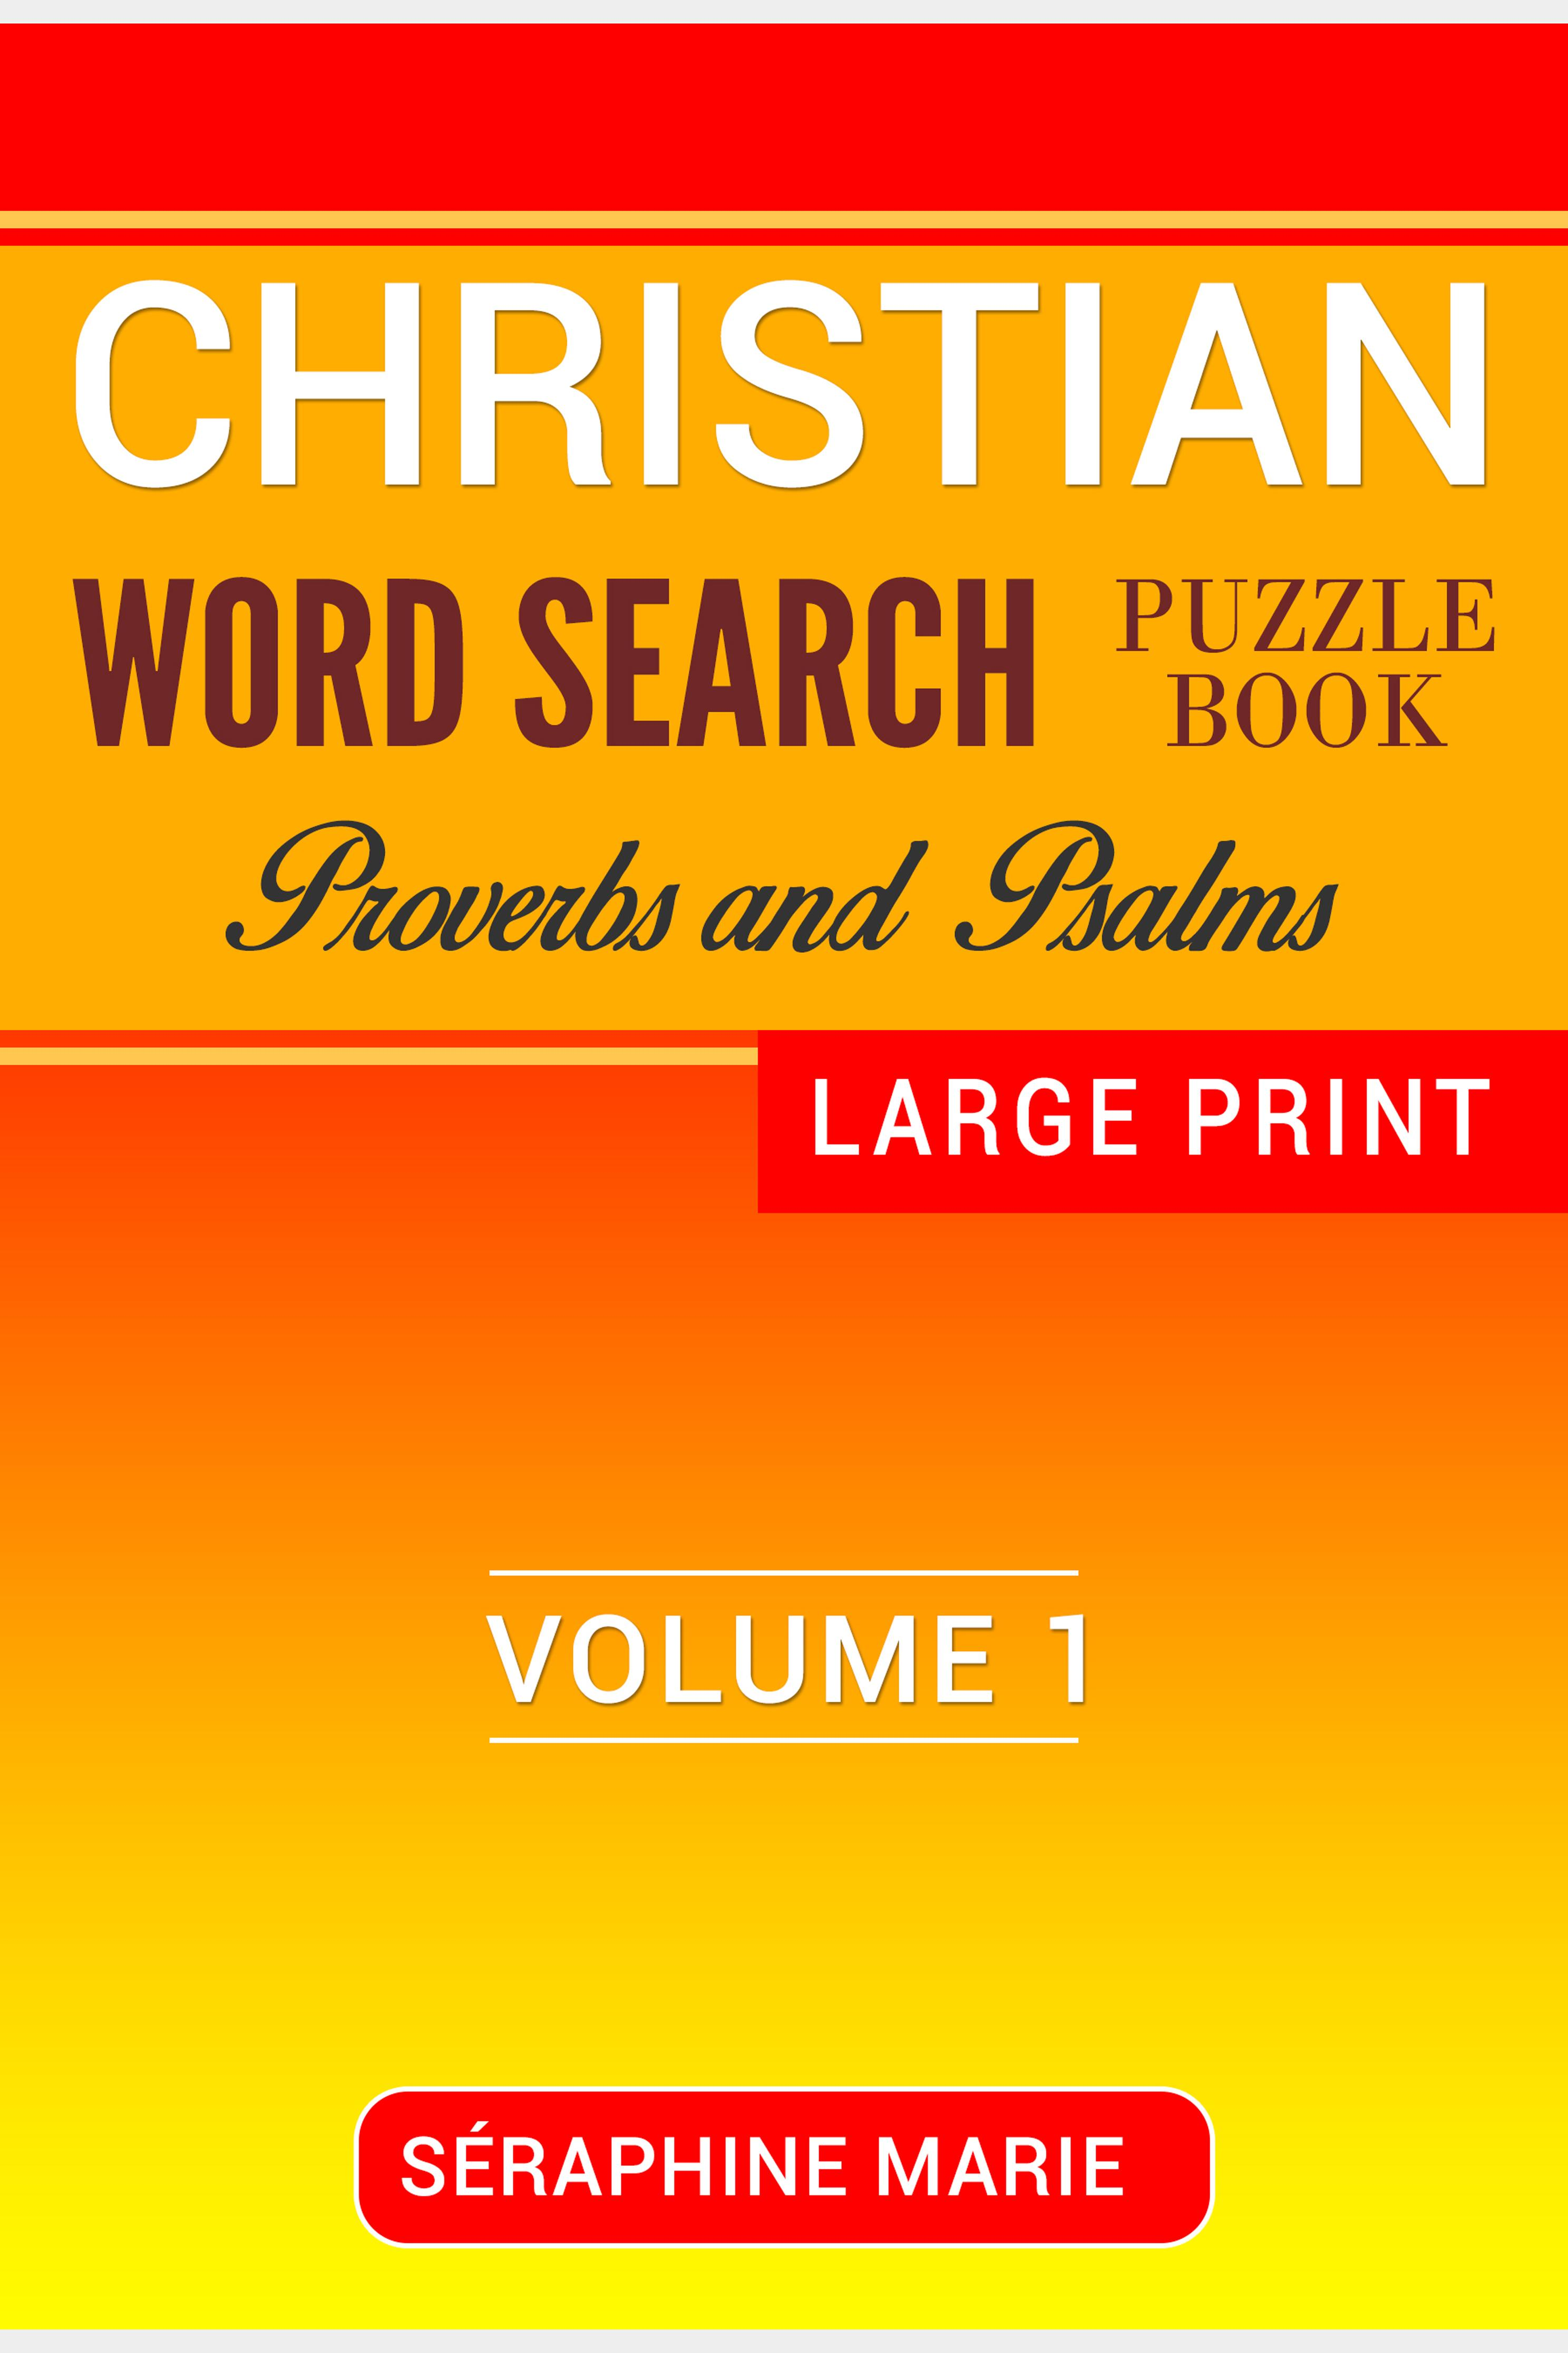 proverbs and psalms word search christian puzzles